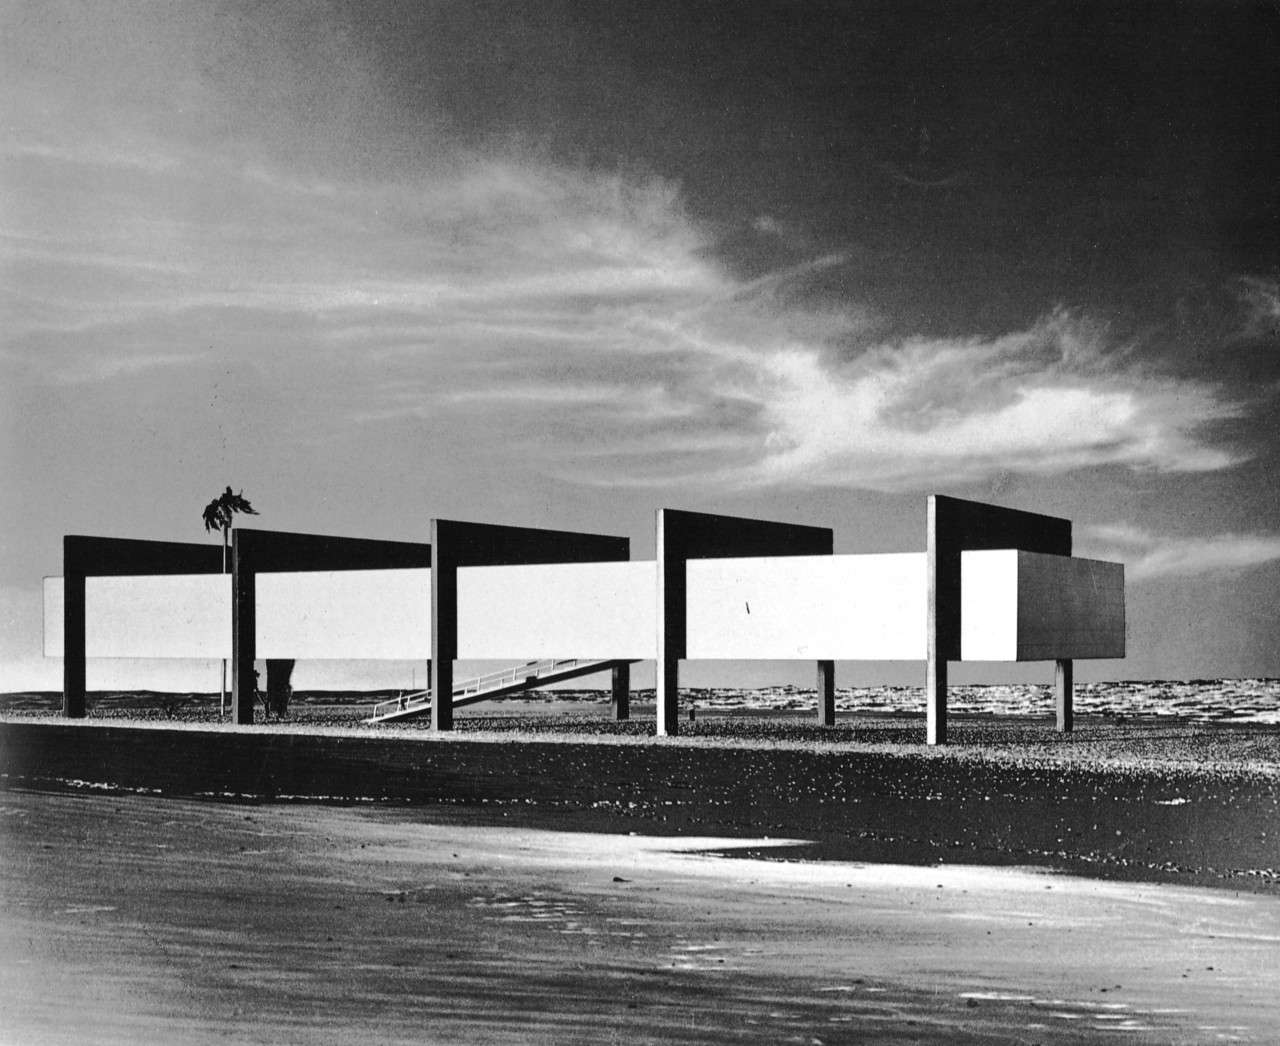 aligntrinity:  Museum On The Seashore Project, Brazil, 1951 Lina Bo Bardi http://www.guardian.co.uk/artanddesign/2012/sep/09/lina-bo-bardi-together-review